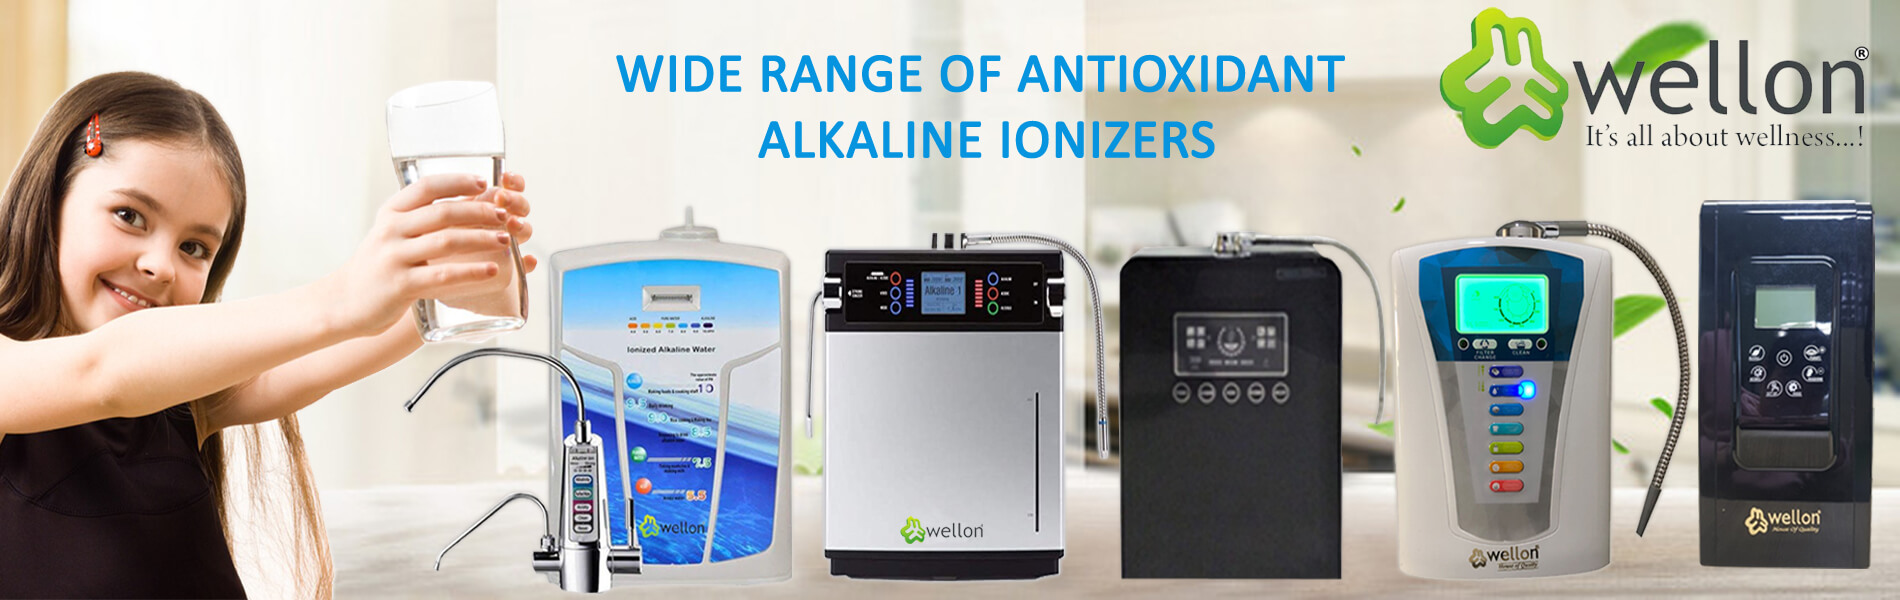 data/WATER PURIFIER ONLINE  IONIZER BANNER copy.jpg